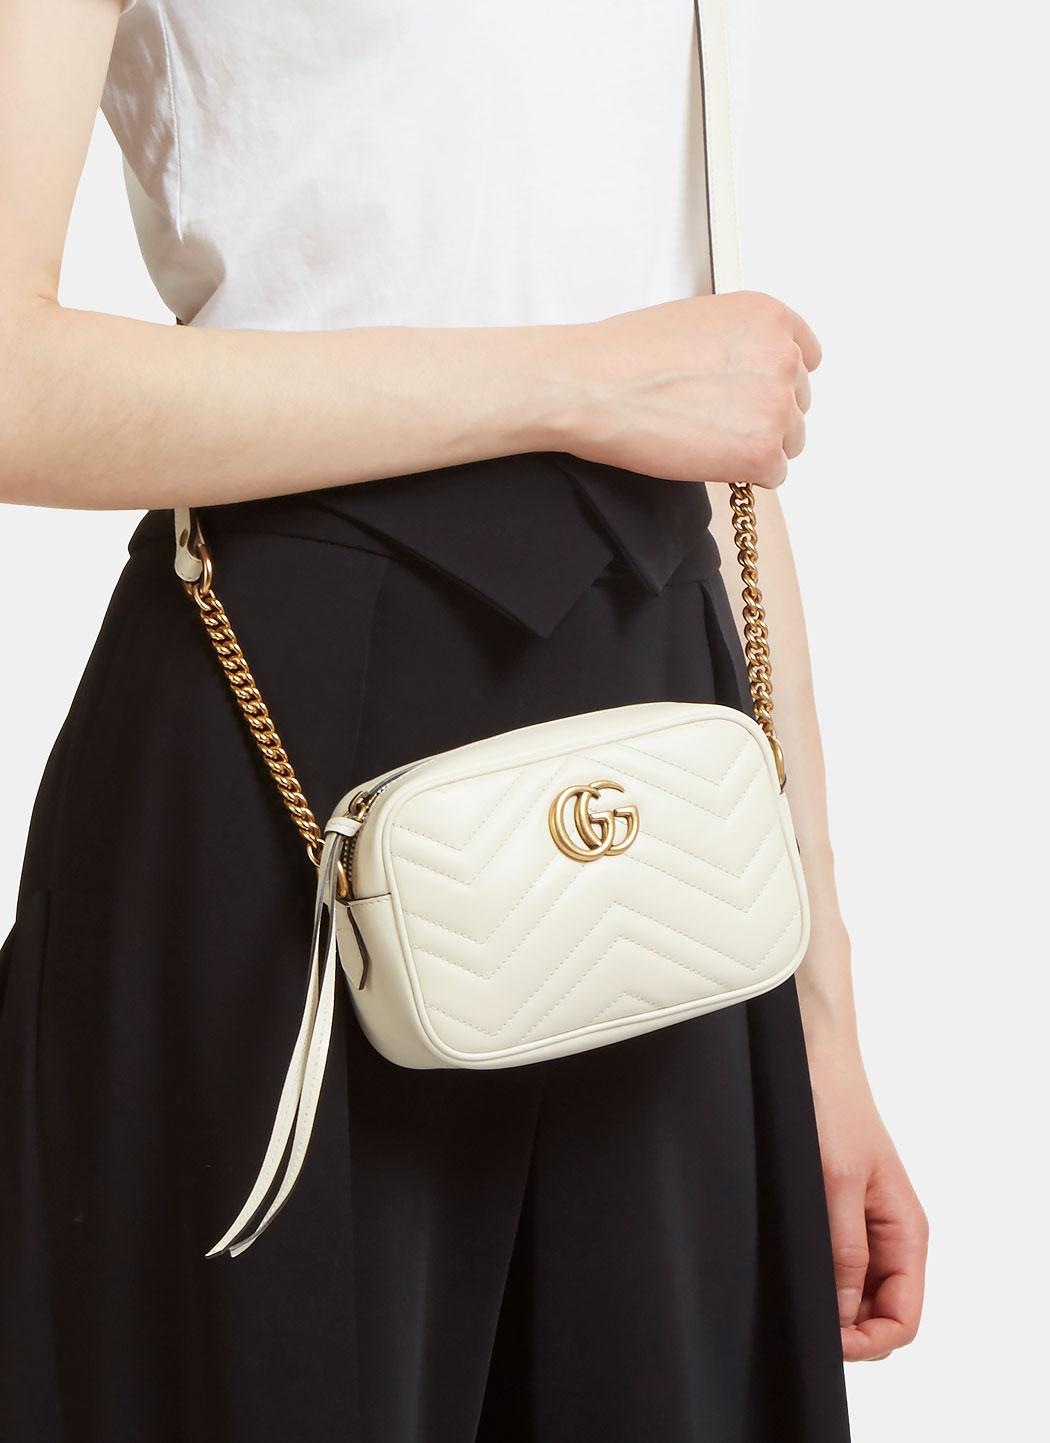 bf710a4b59f8 Lyst - Gucci Gg Marmont Matelassé Mini Bag In Ivory in White